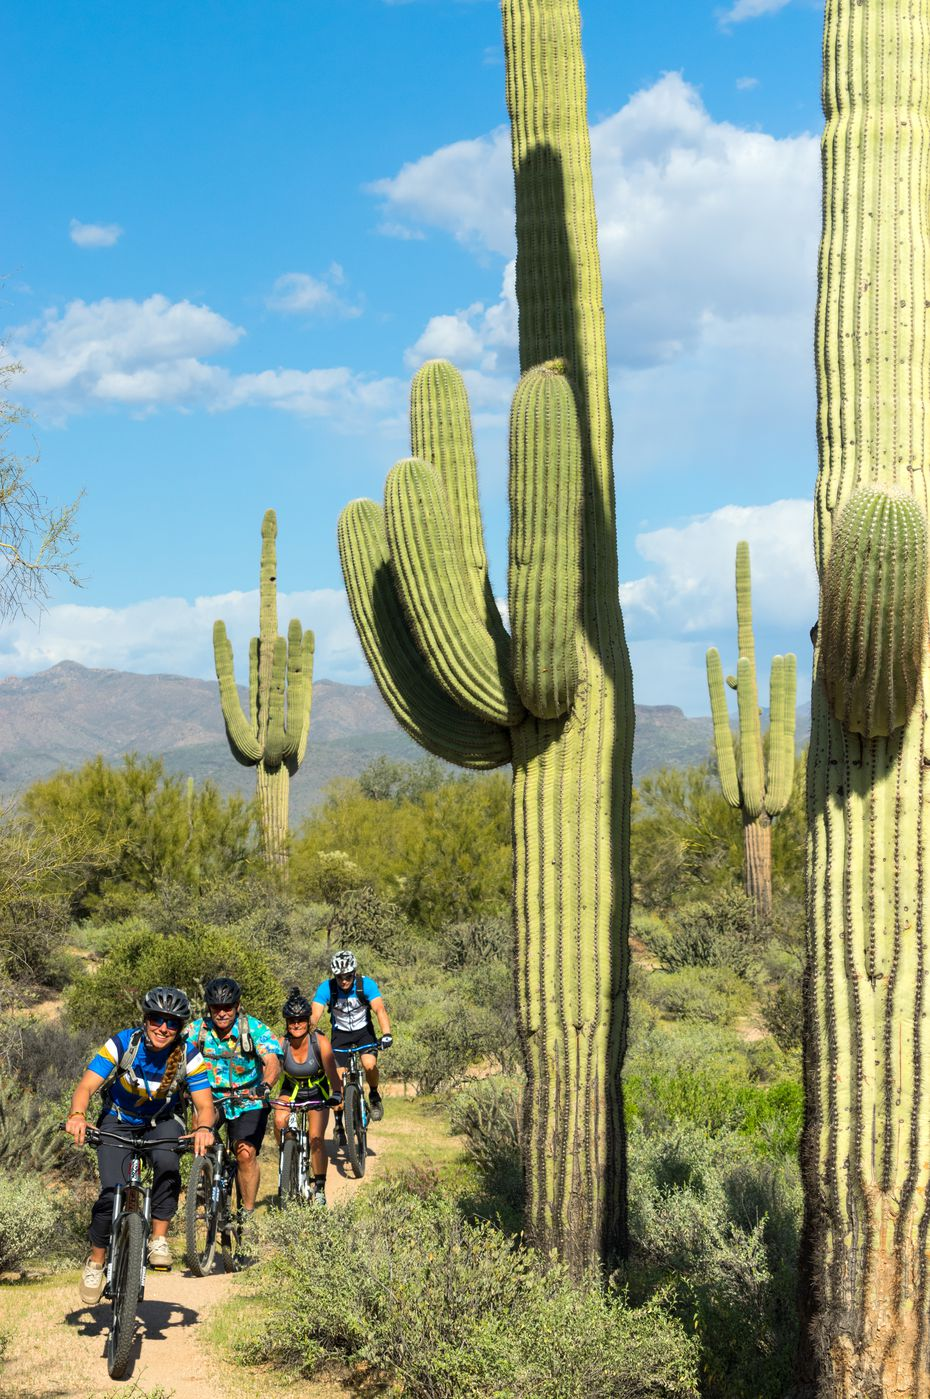 Mountain bikers ride in the sprawling McDowell Sonoran Preserve.